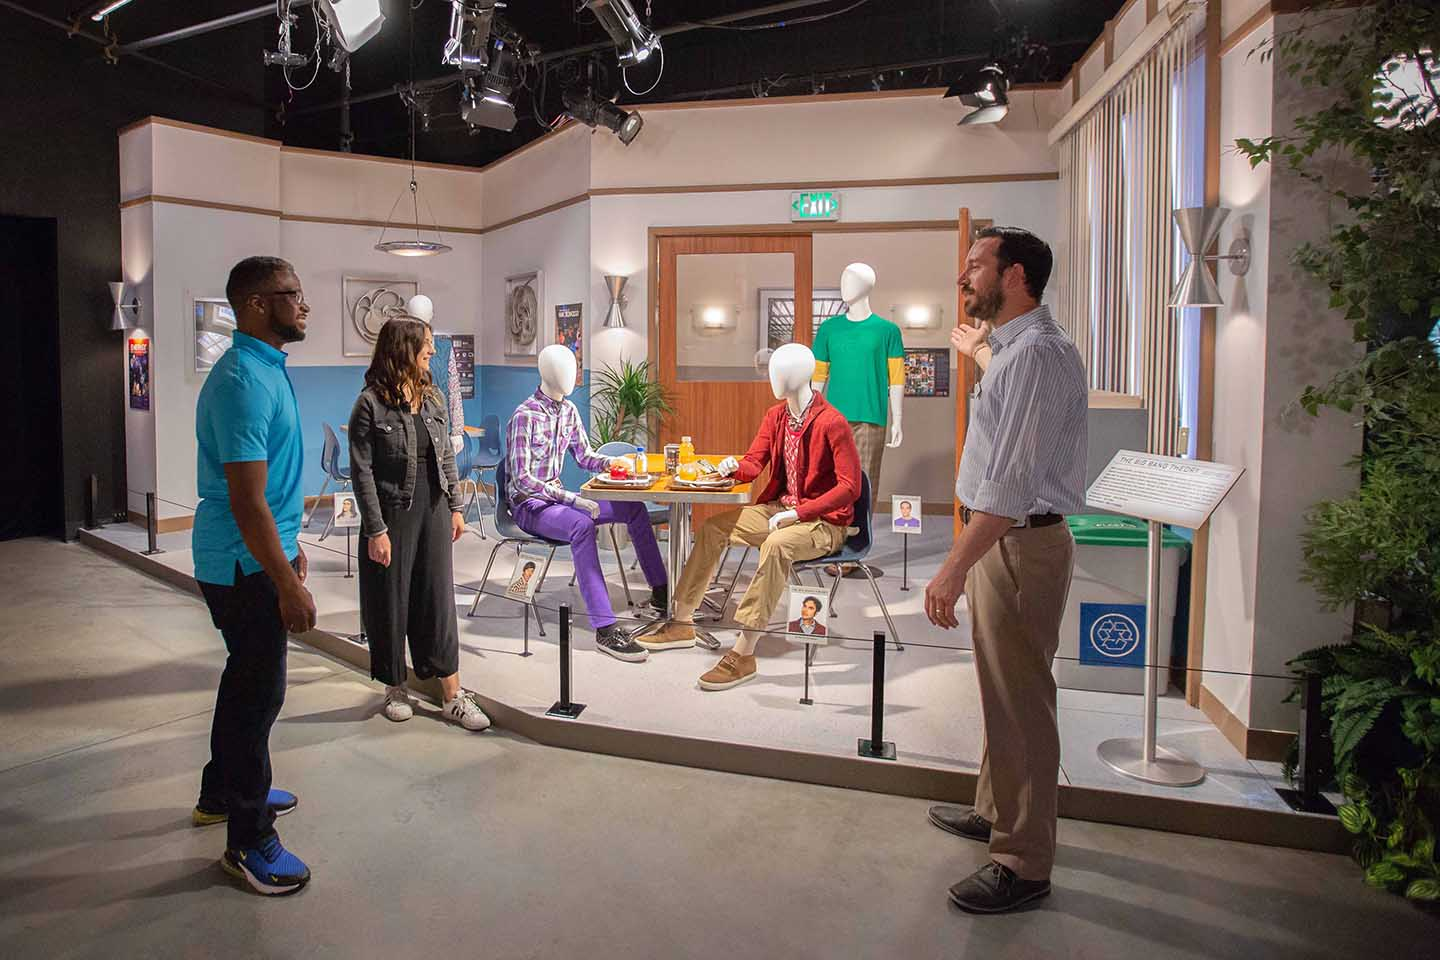 The Big Bang Theory Sets